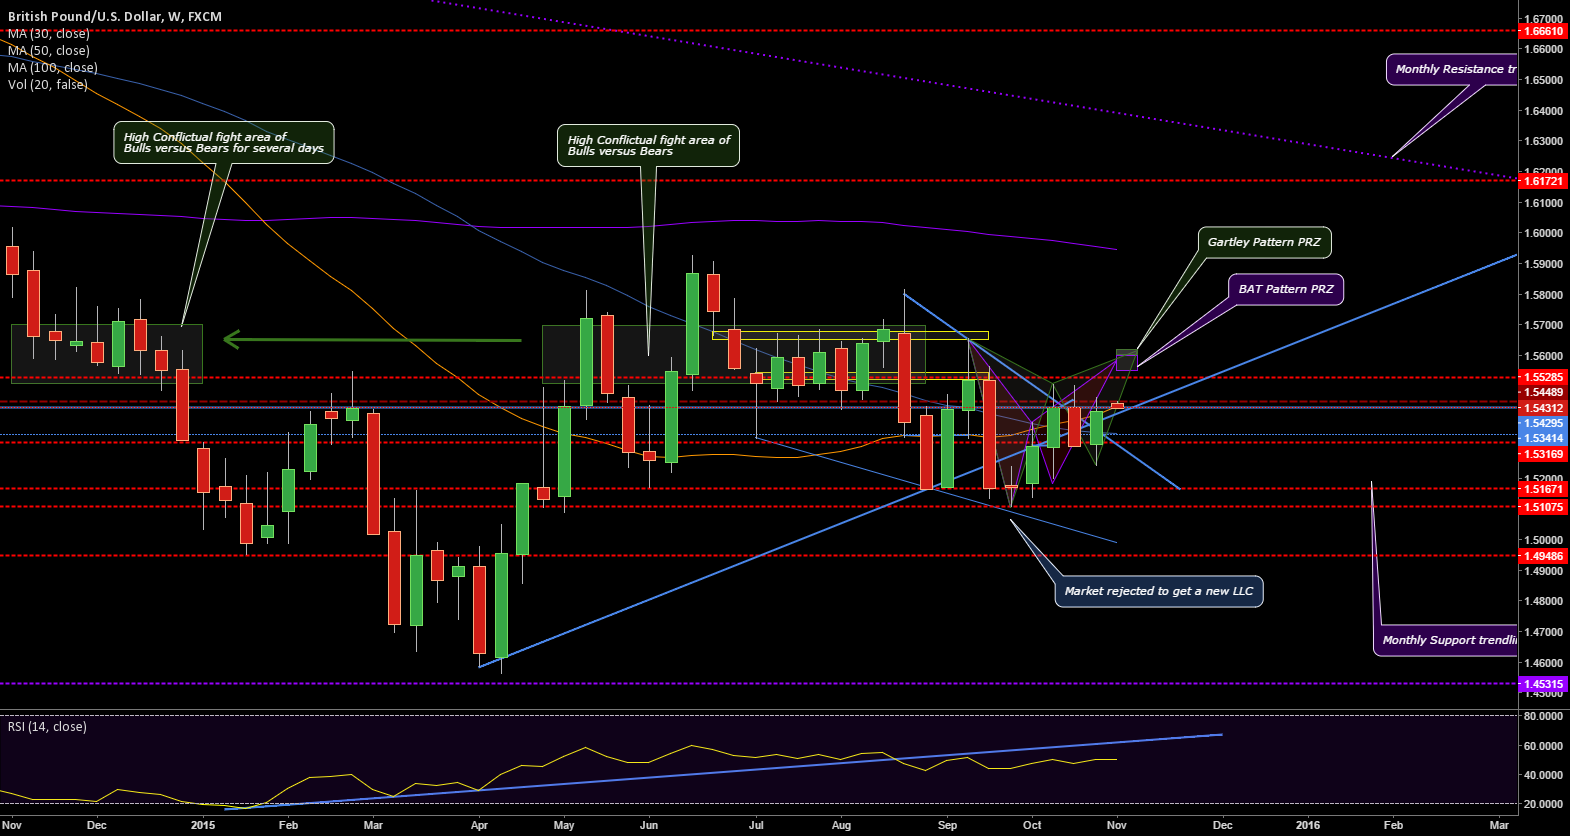 Gartley and Bat Pattern preparing to bounce ?